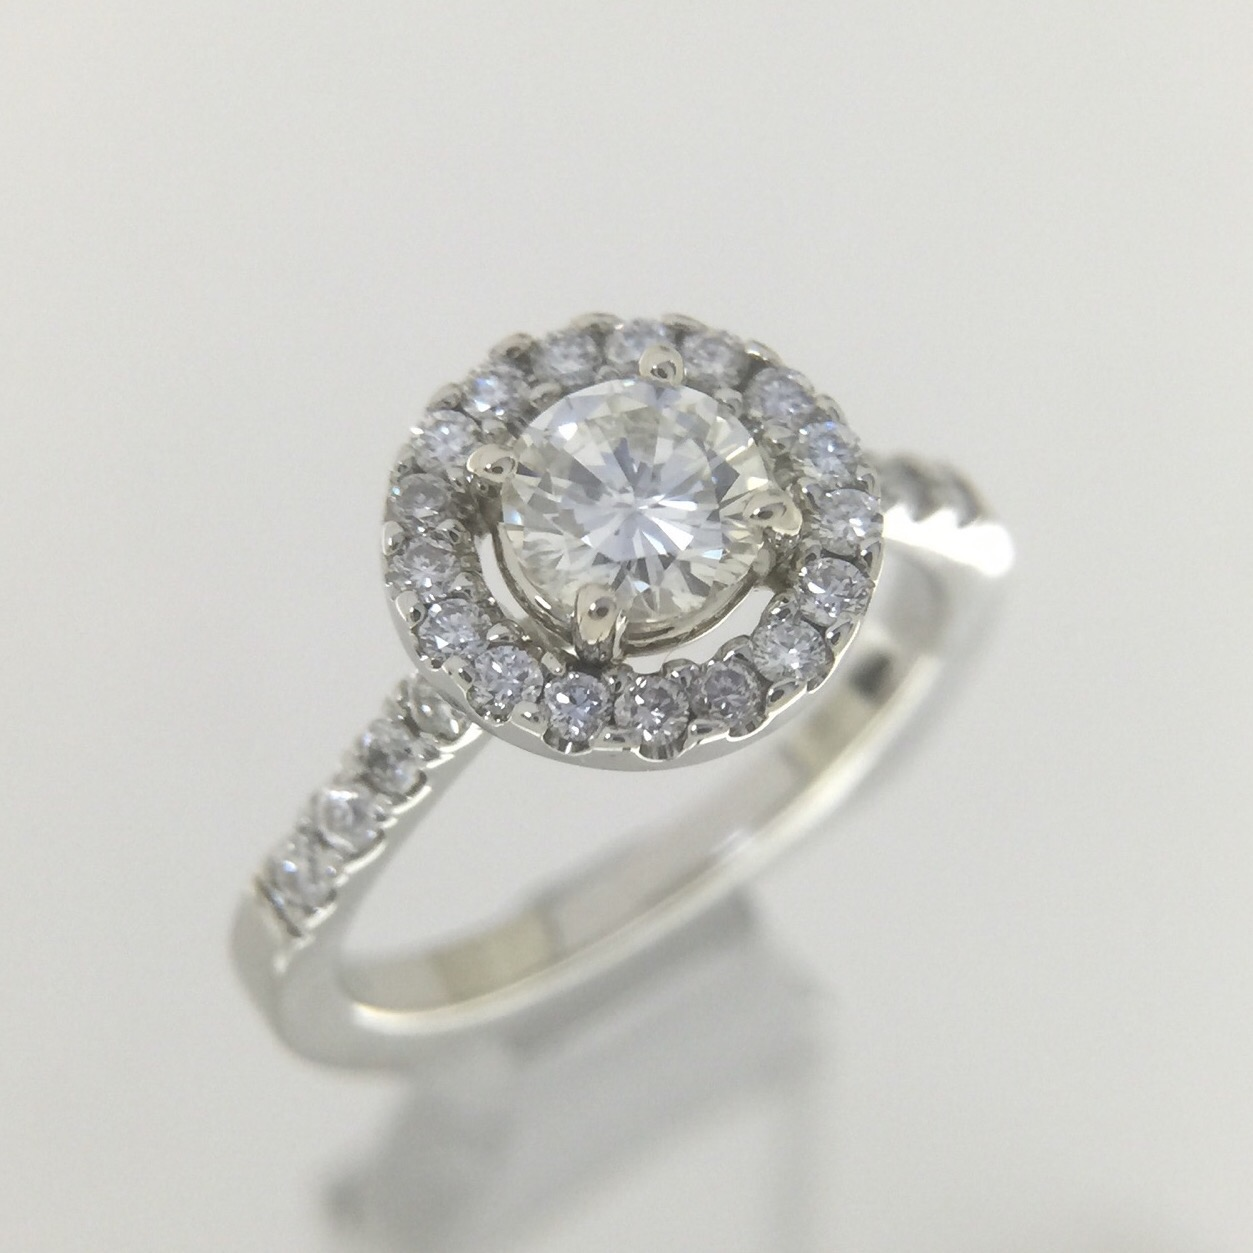 antique glamour earth halo classy engagement style ring dollars gallery main with diamond brilliant rings under weddings